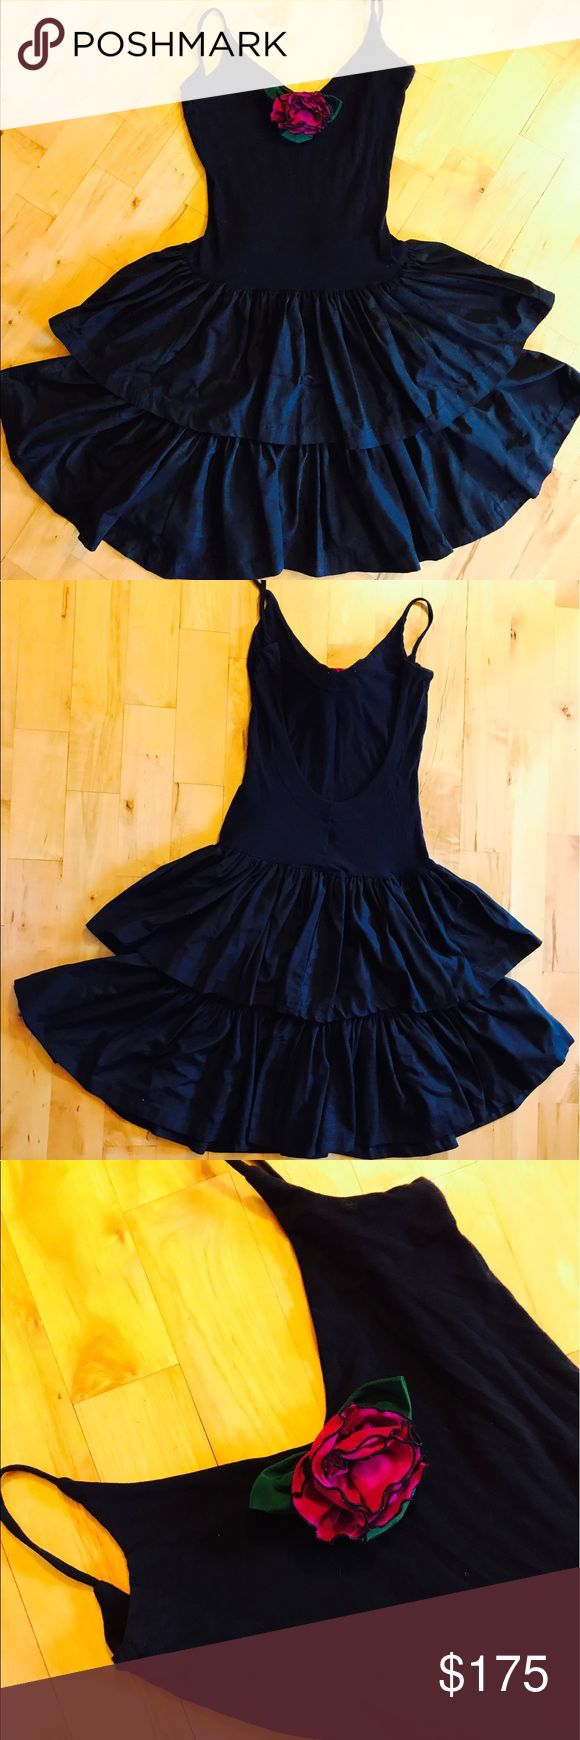 """🌺Vintage Late 80s Betsey Johnson, Punk Label What can I say! Gorgeous dress, excellent condition. 42""""L, 15""""B, 13.5""""W. V neck with flower accent, plunging back, two full taffeta layers on skirt. A showstopper. I wore this when I went to the Grammy Awards and got TONS of compliments, worn maybe once or twice after that. I was keeping for the sentiment, but it is time to let the beauty go to a new home. Shell is cotton/Lycra ruffle is acetate/rayon. Comes just to the knee on me, I am 5'8""""…"""